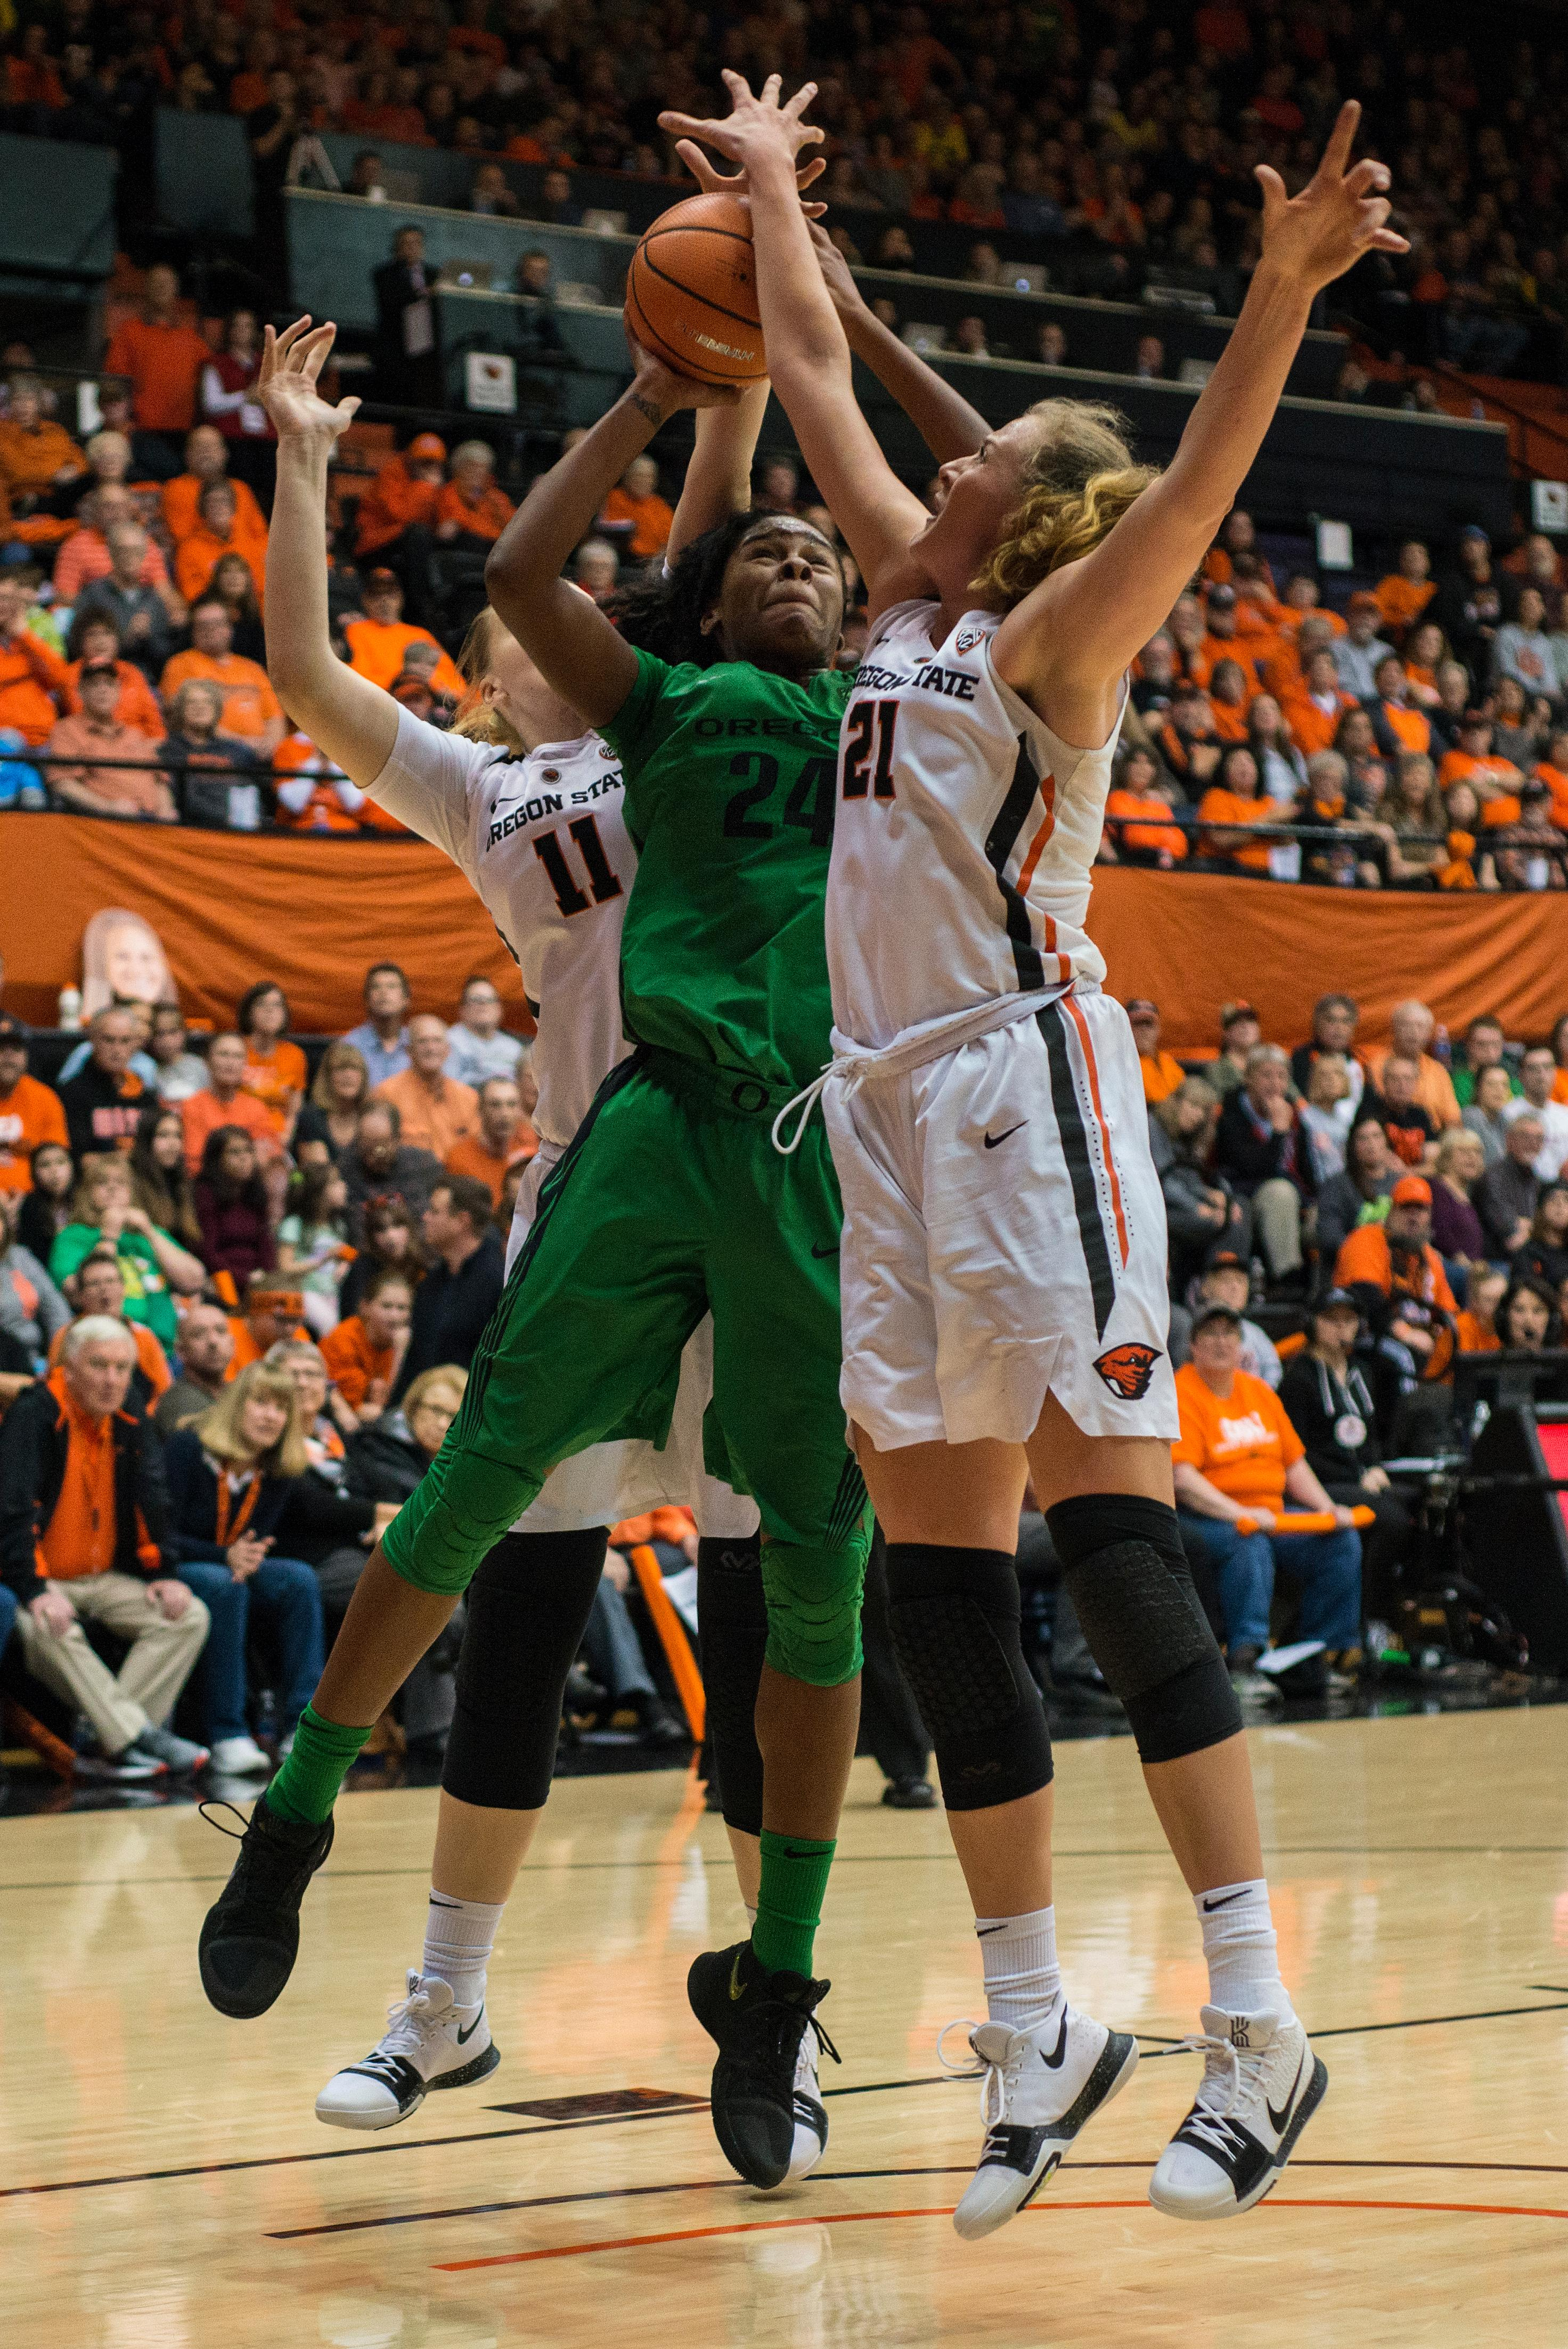 Oregon Ducks guard Ruthy Hebard (#24) goes for the shot as Oregon State Beavers centers Marie Gülich (#21) and Joanna Grymek (#11) surround her.The Oregon Ducks were defeated by the Oregon State Beavers 85-79 on Friday night in Corvallis. Sabrina Ionescu scored 35 points and Ruthy Hebard added 24. The Ducks will face the Beavers this Sunday at 5 p.m. at Matthew Knight Arena. Photo by Abigail Winn, Oregon News Lab